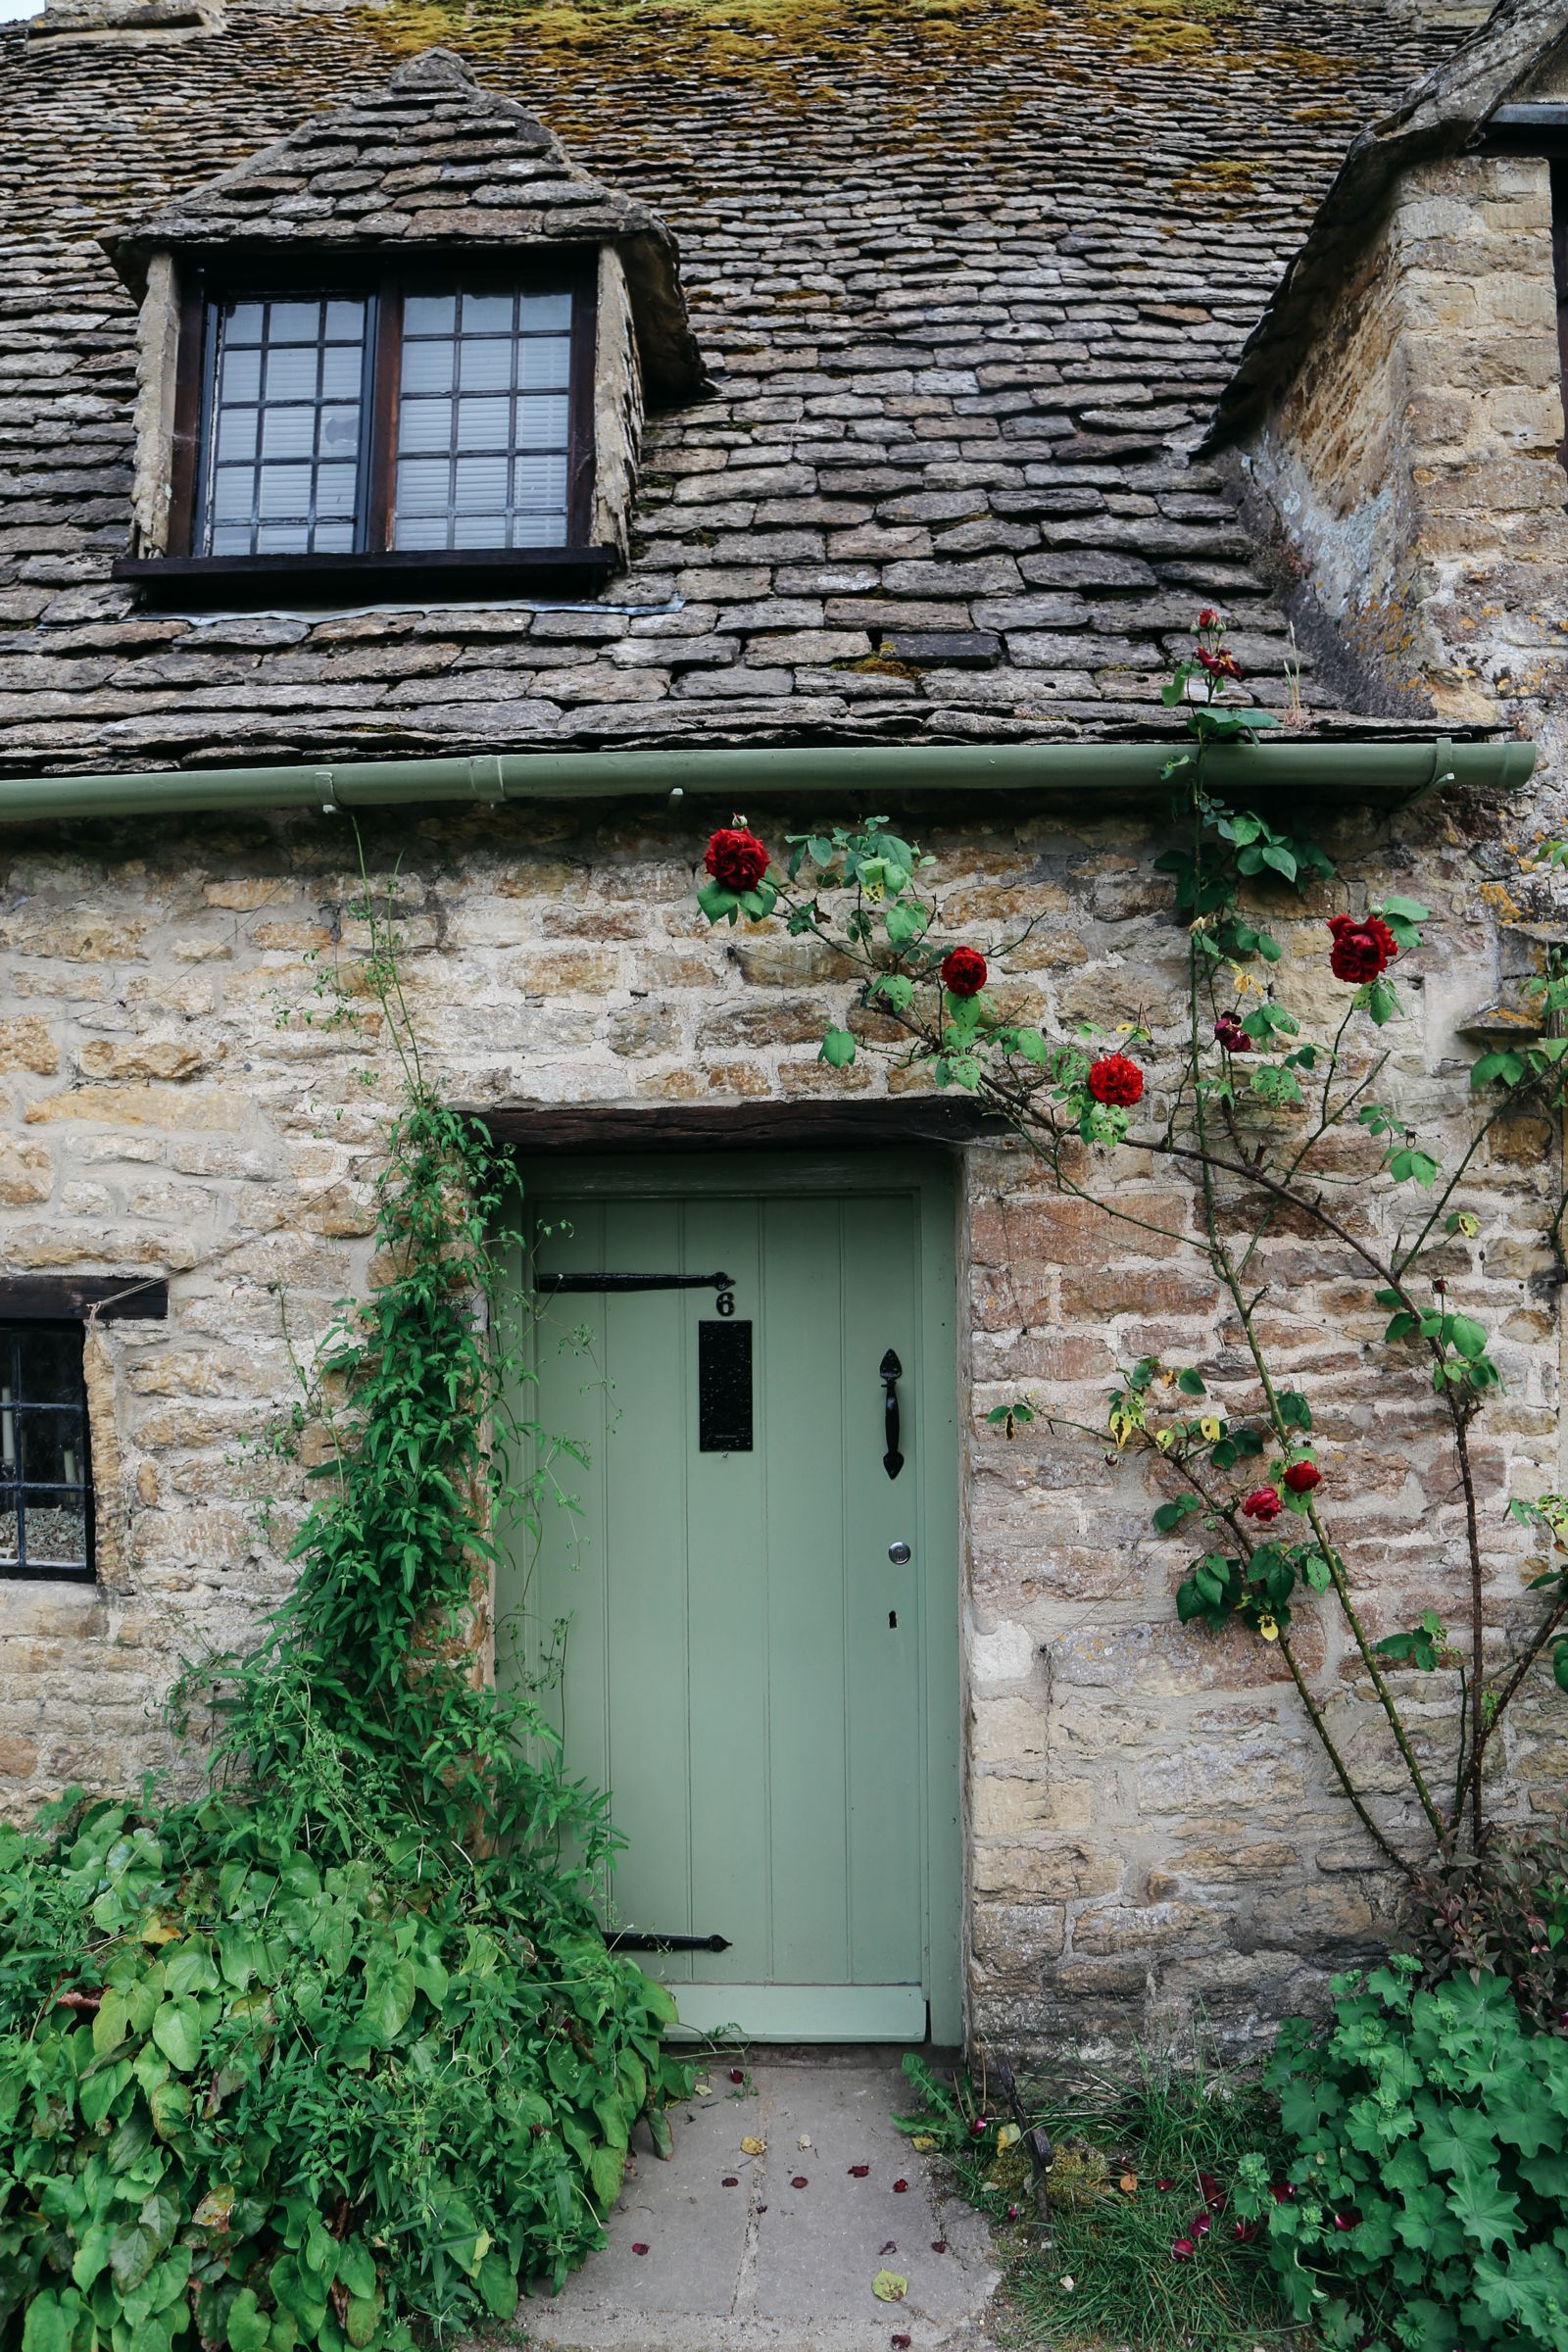 In Search Of The Most Beautiful Street In England - Arlington Row, Bibury (10)